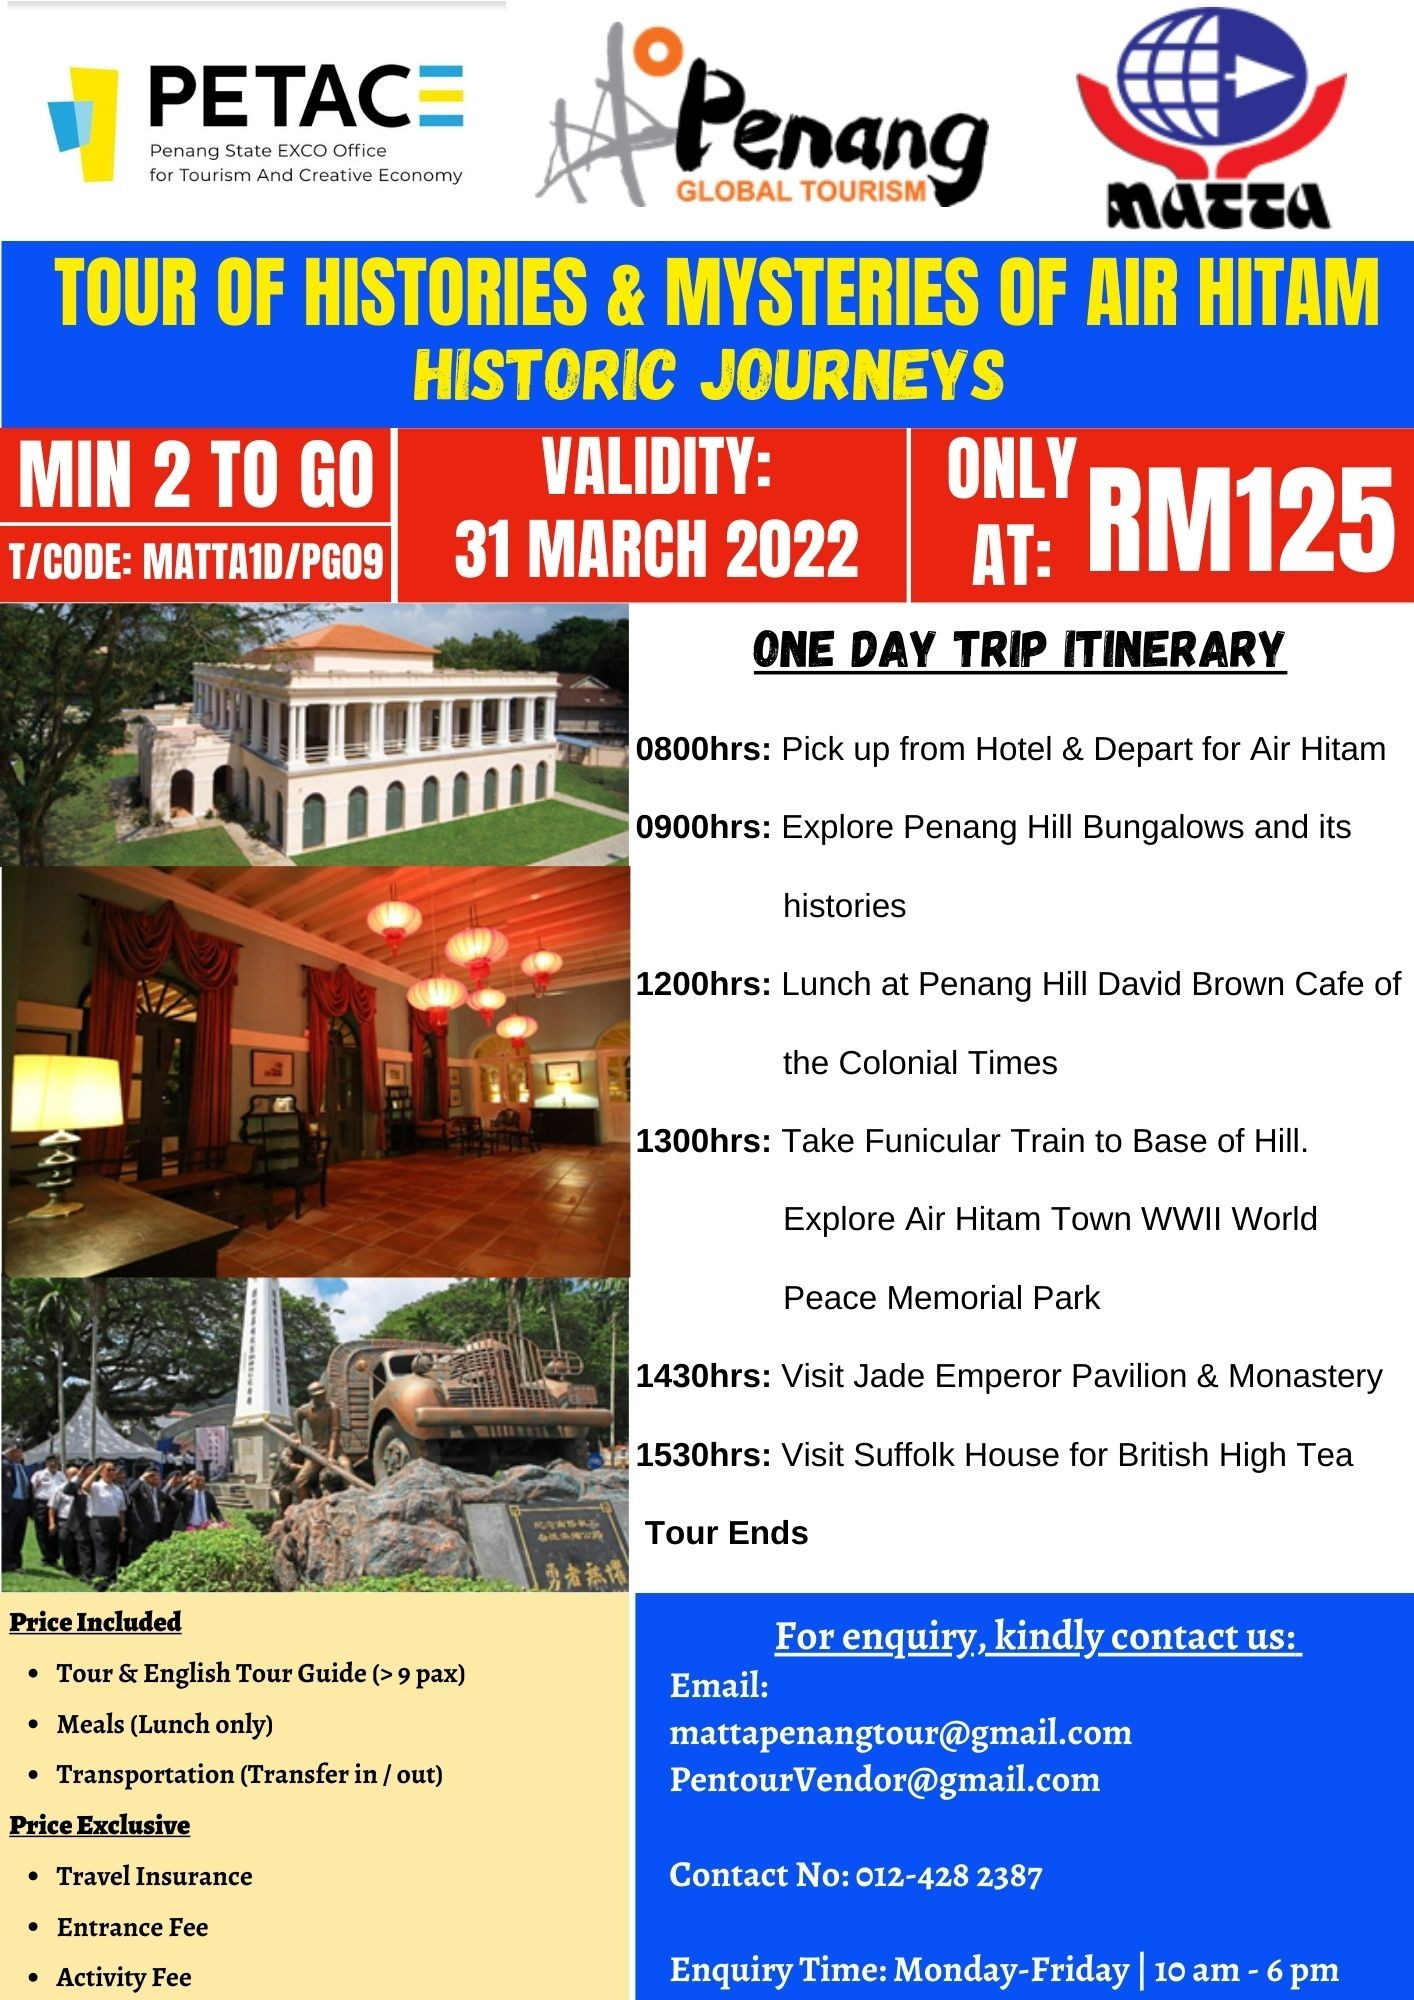 Tour of Histories & Mysteries of Air Hitam